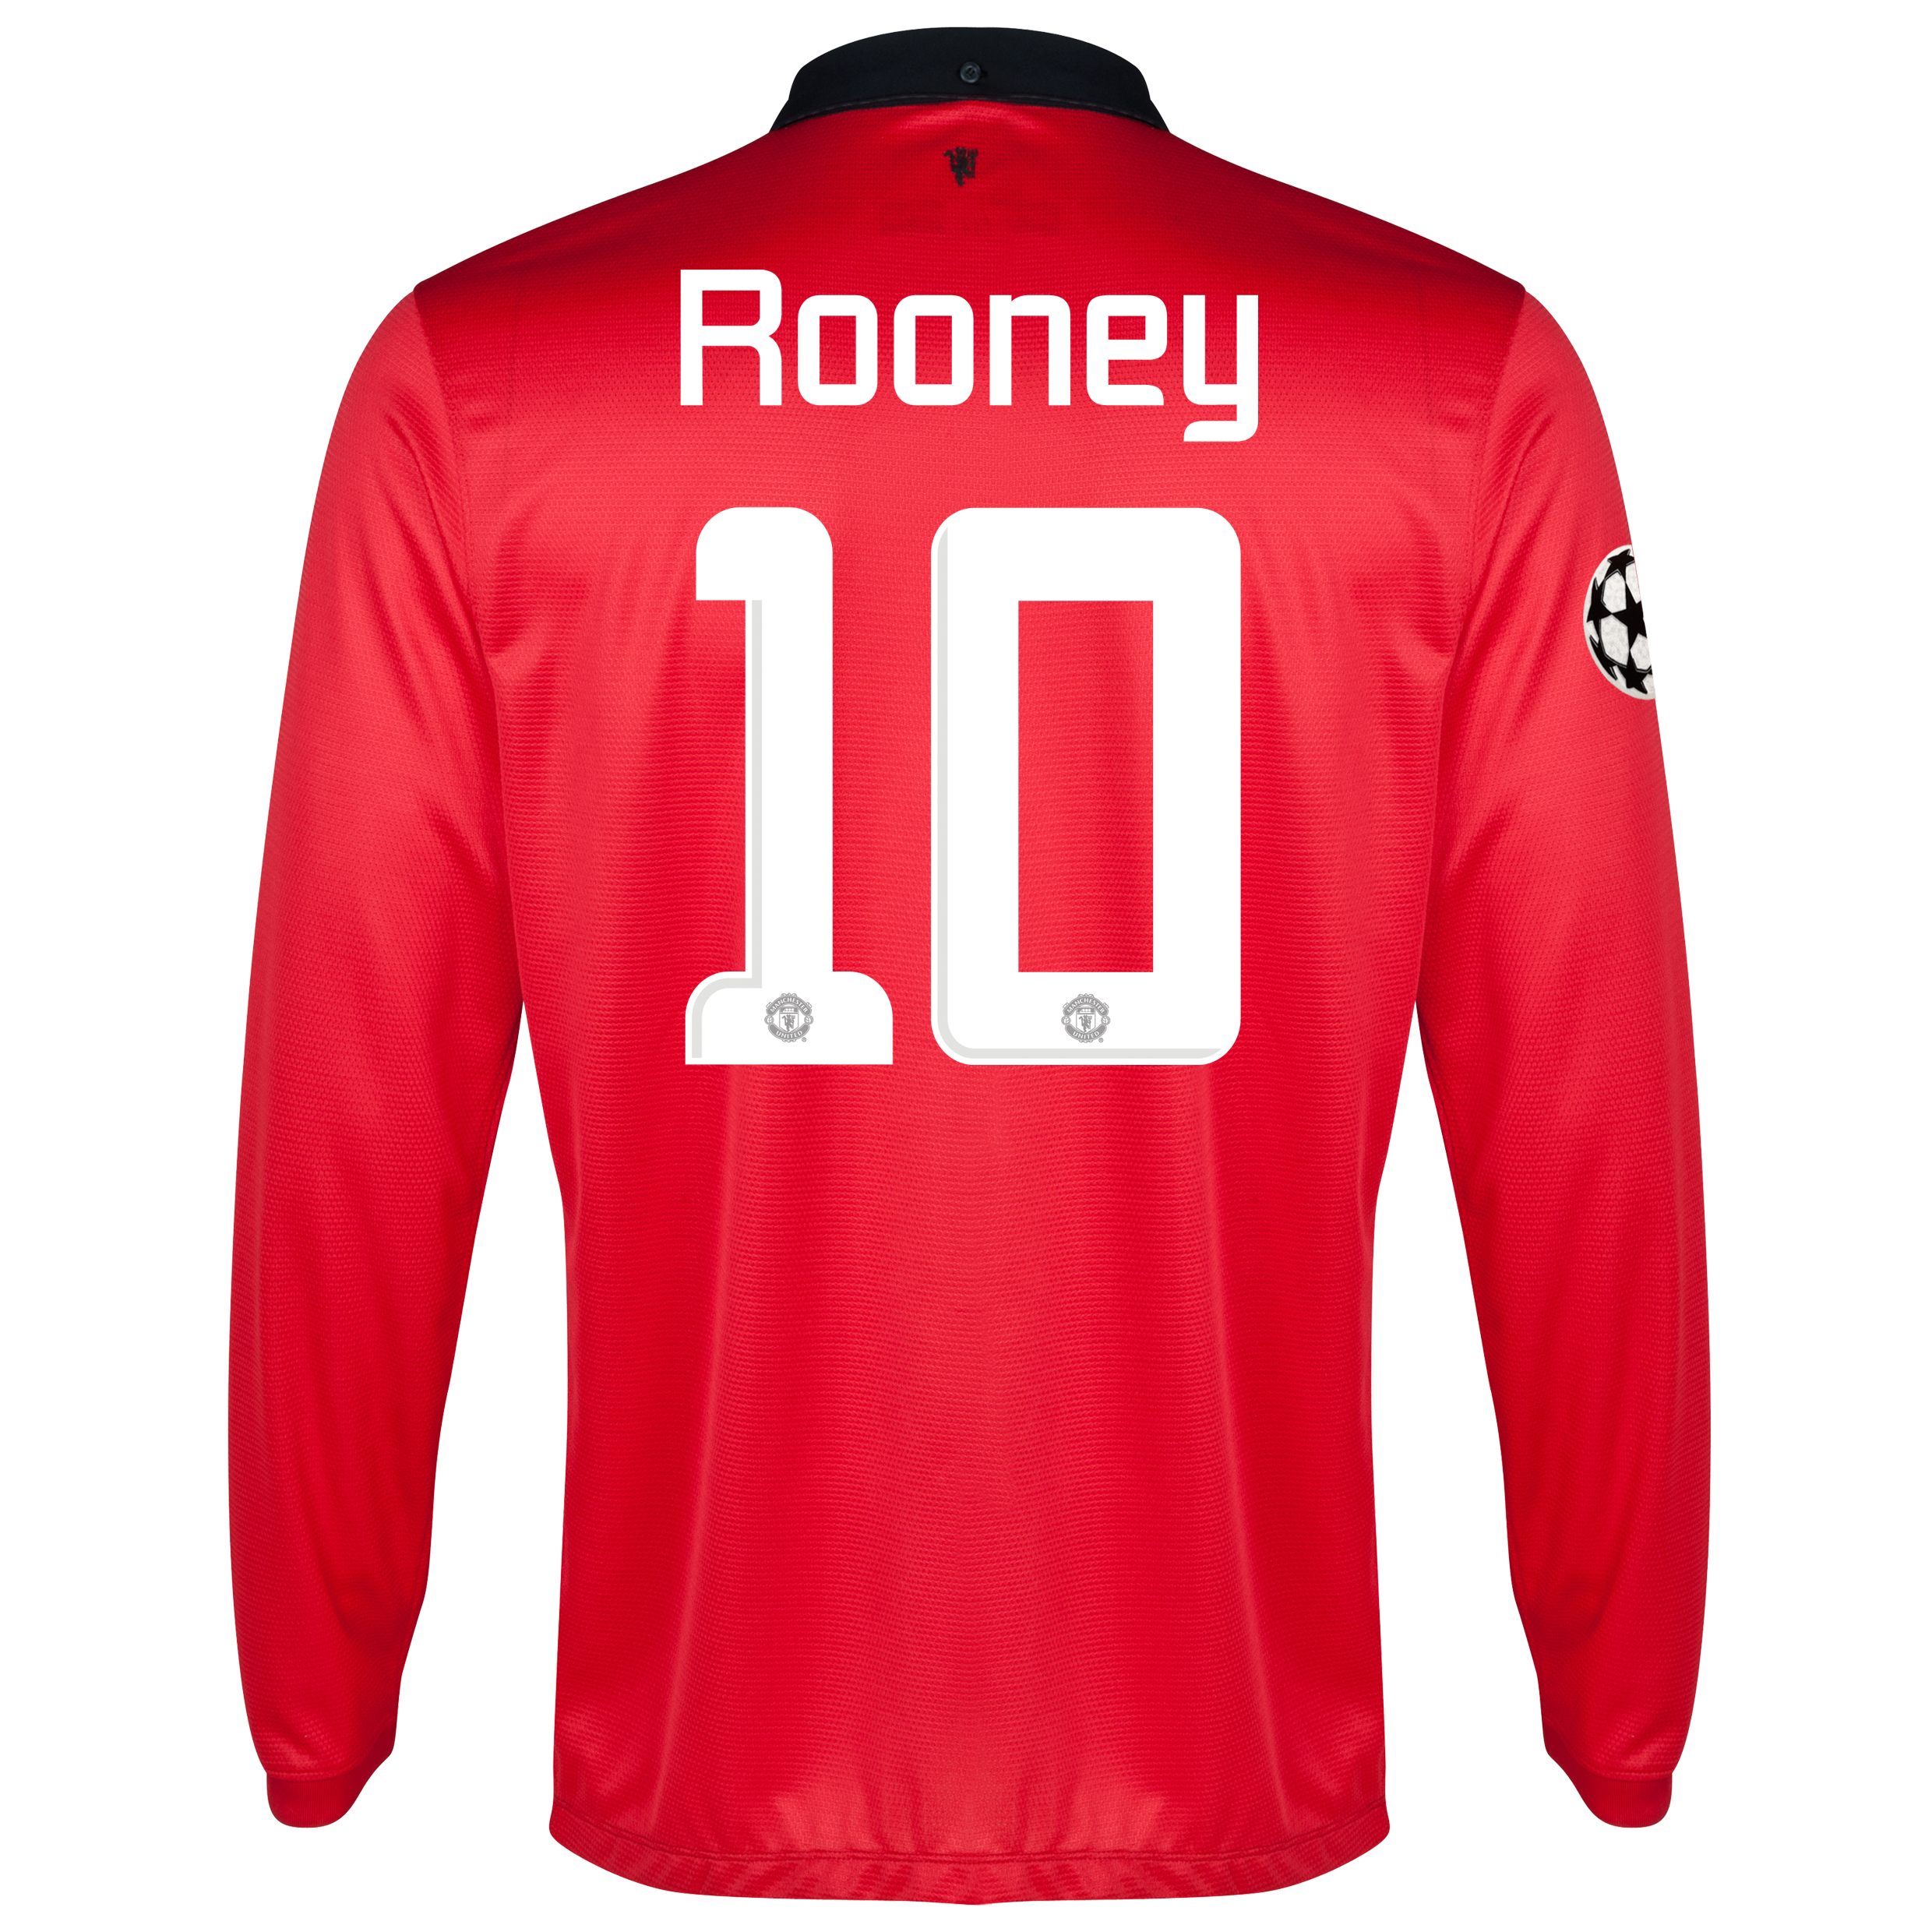 Manchester United UEFA Champions League Home Shirt 2013/14 - Long Sleeved with Rooney 10 printing